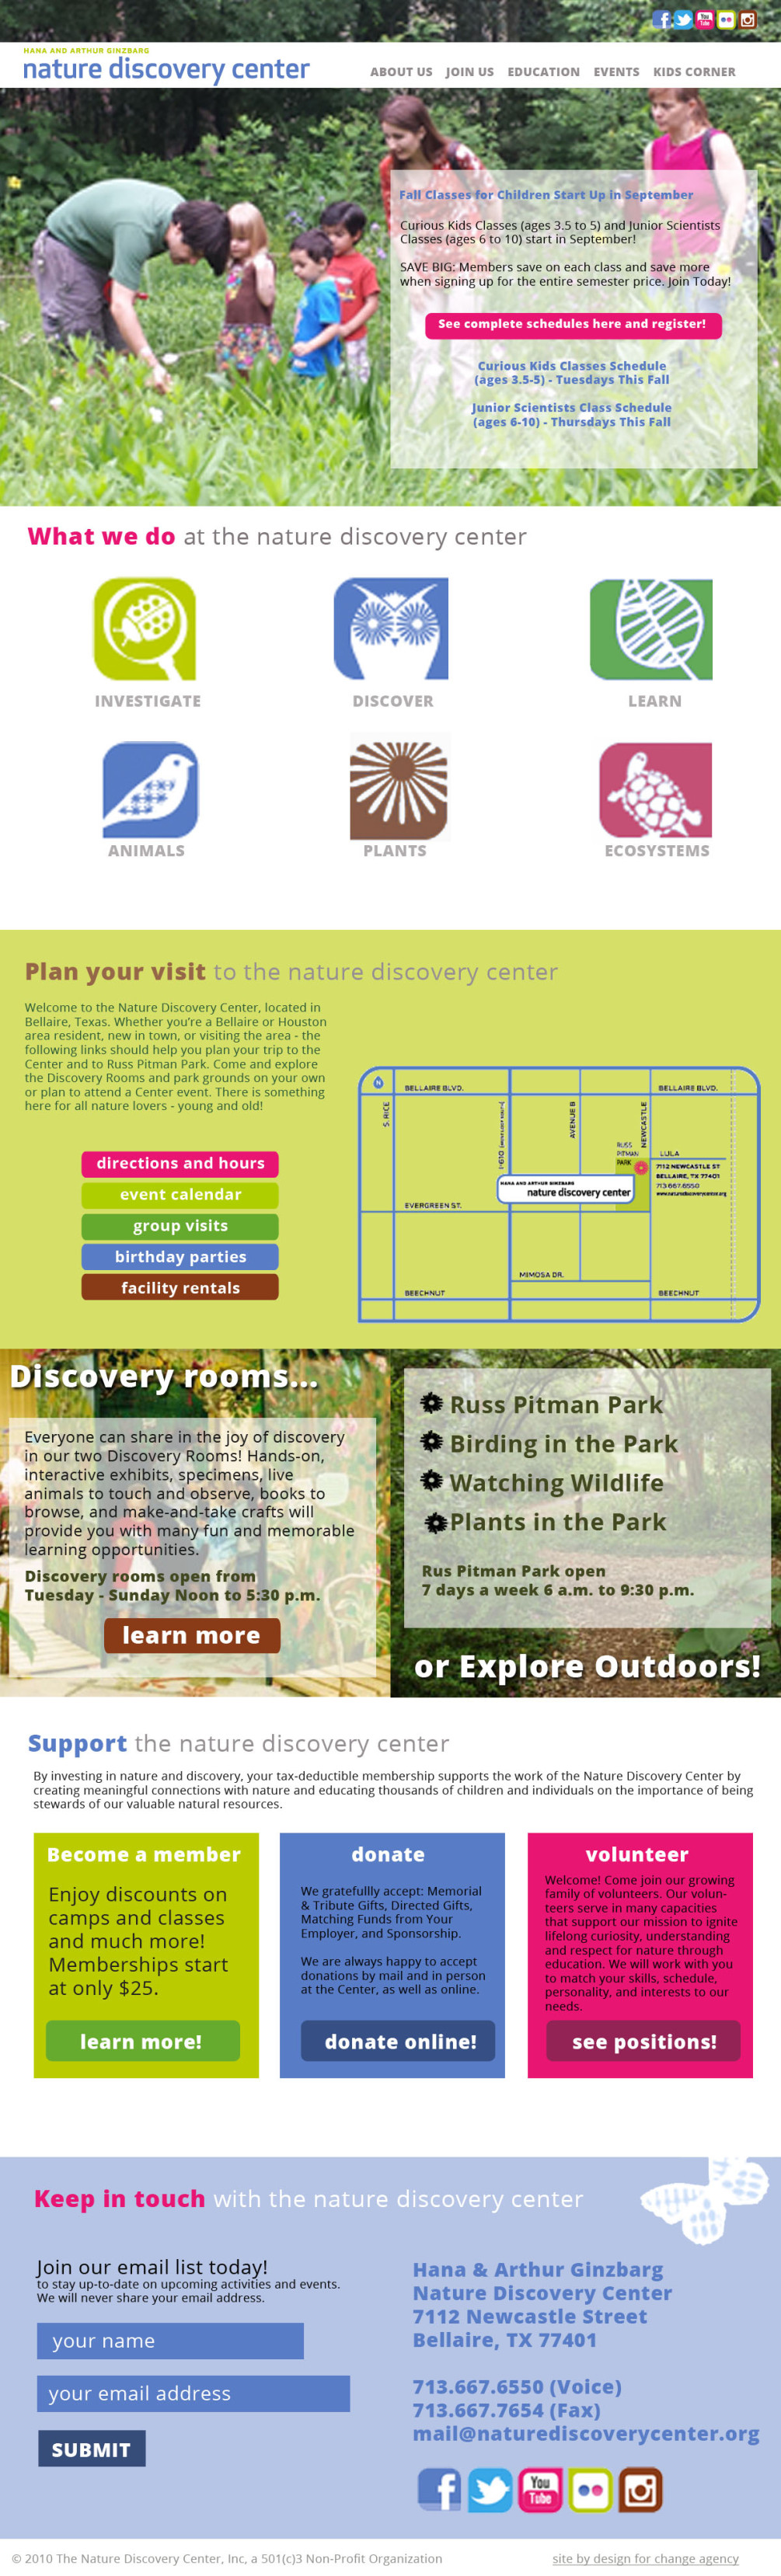 nature discovery center homepage mockup